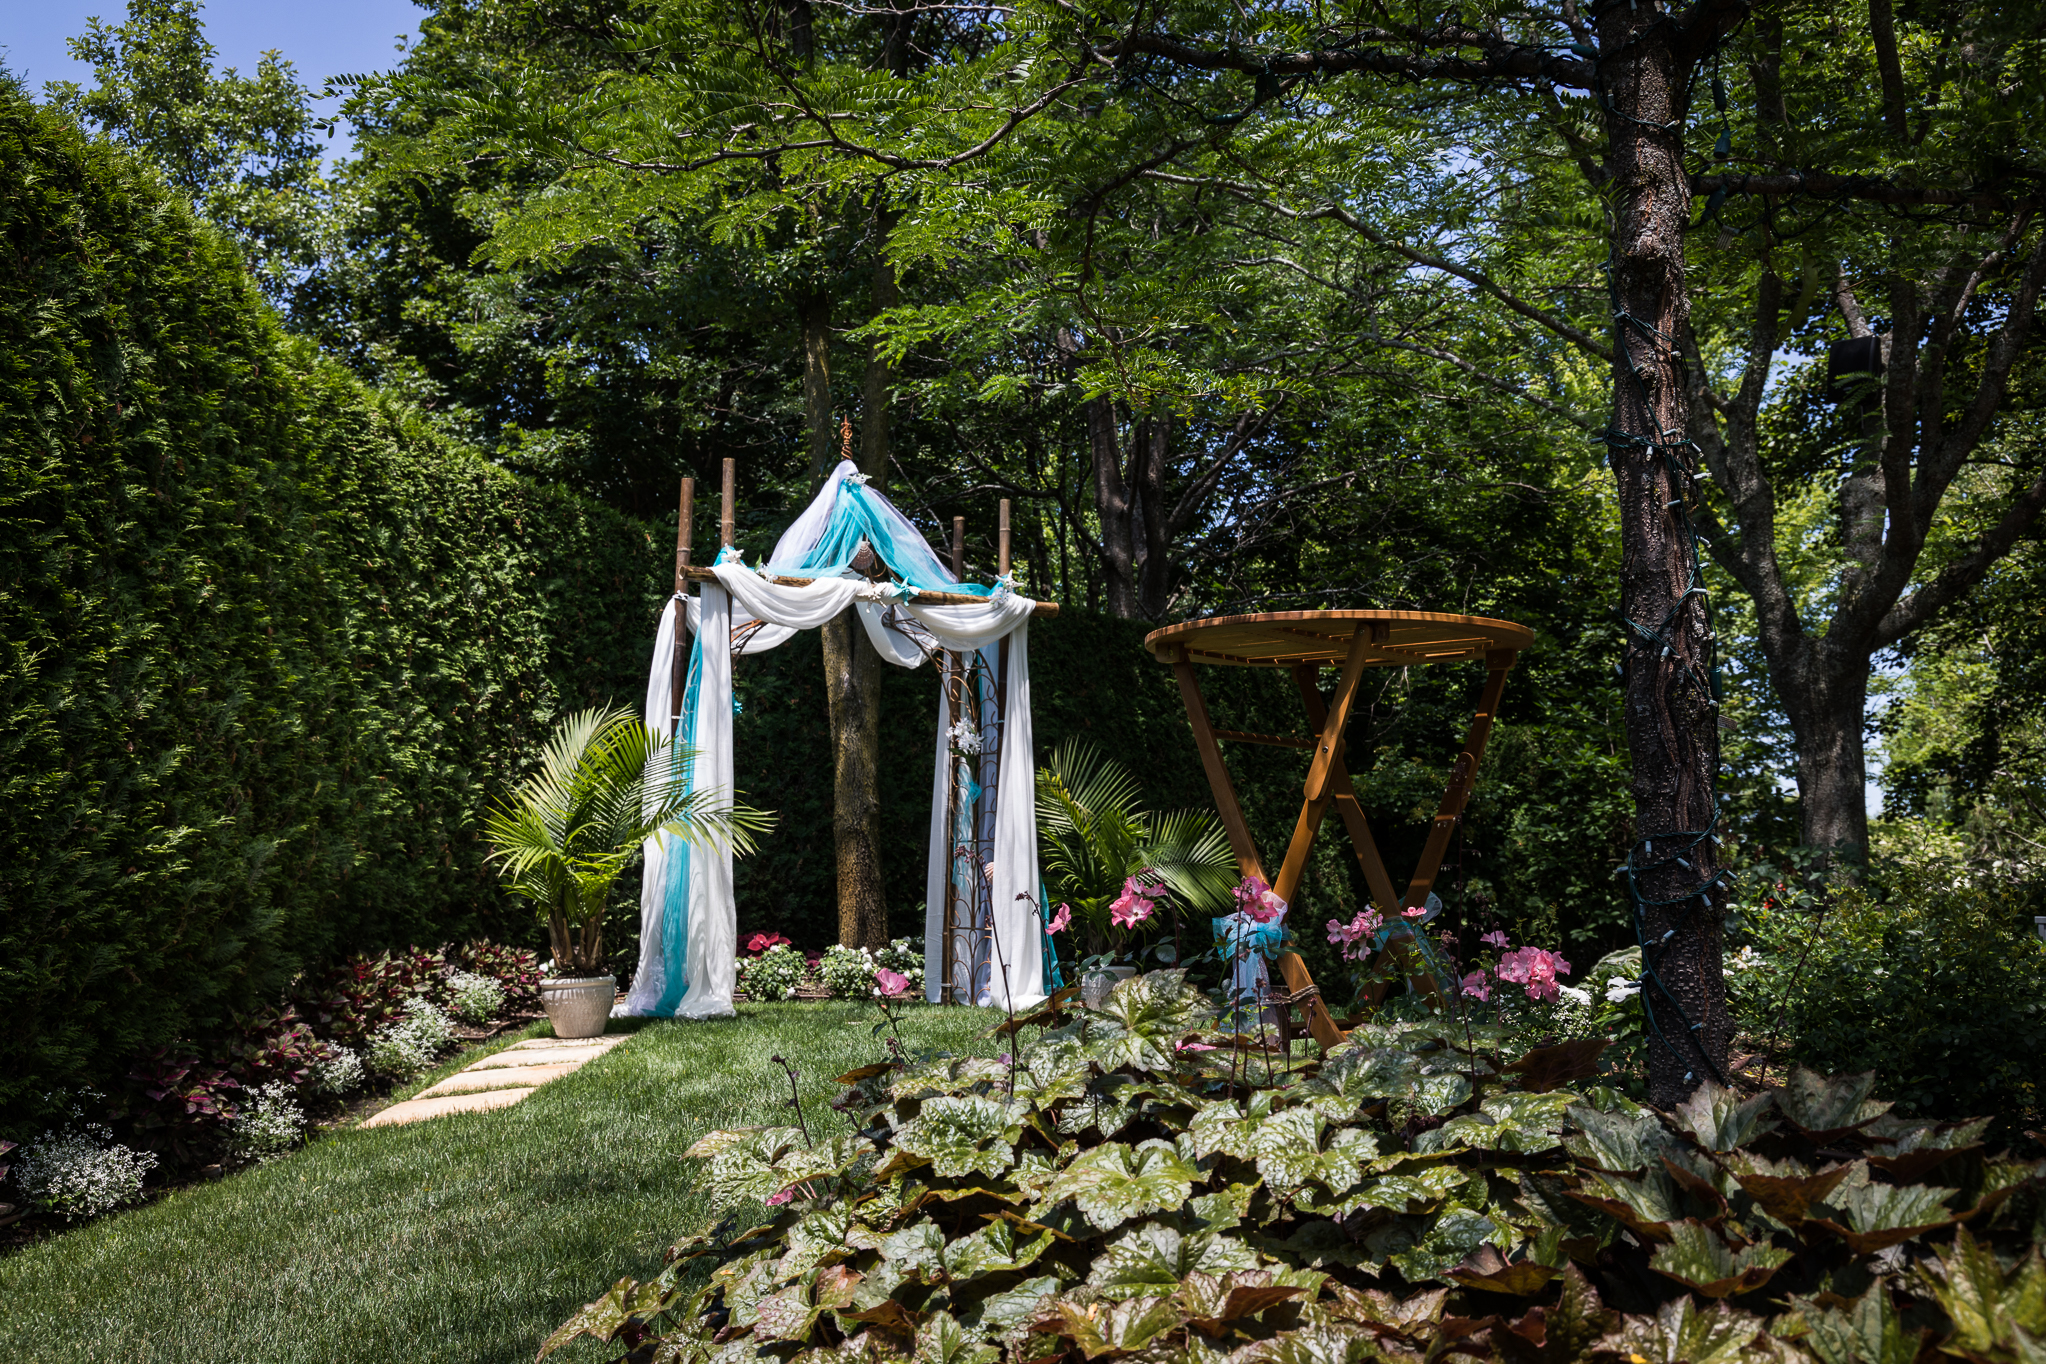 setup_wedding_08_05_17-1007.jpg